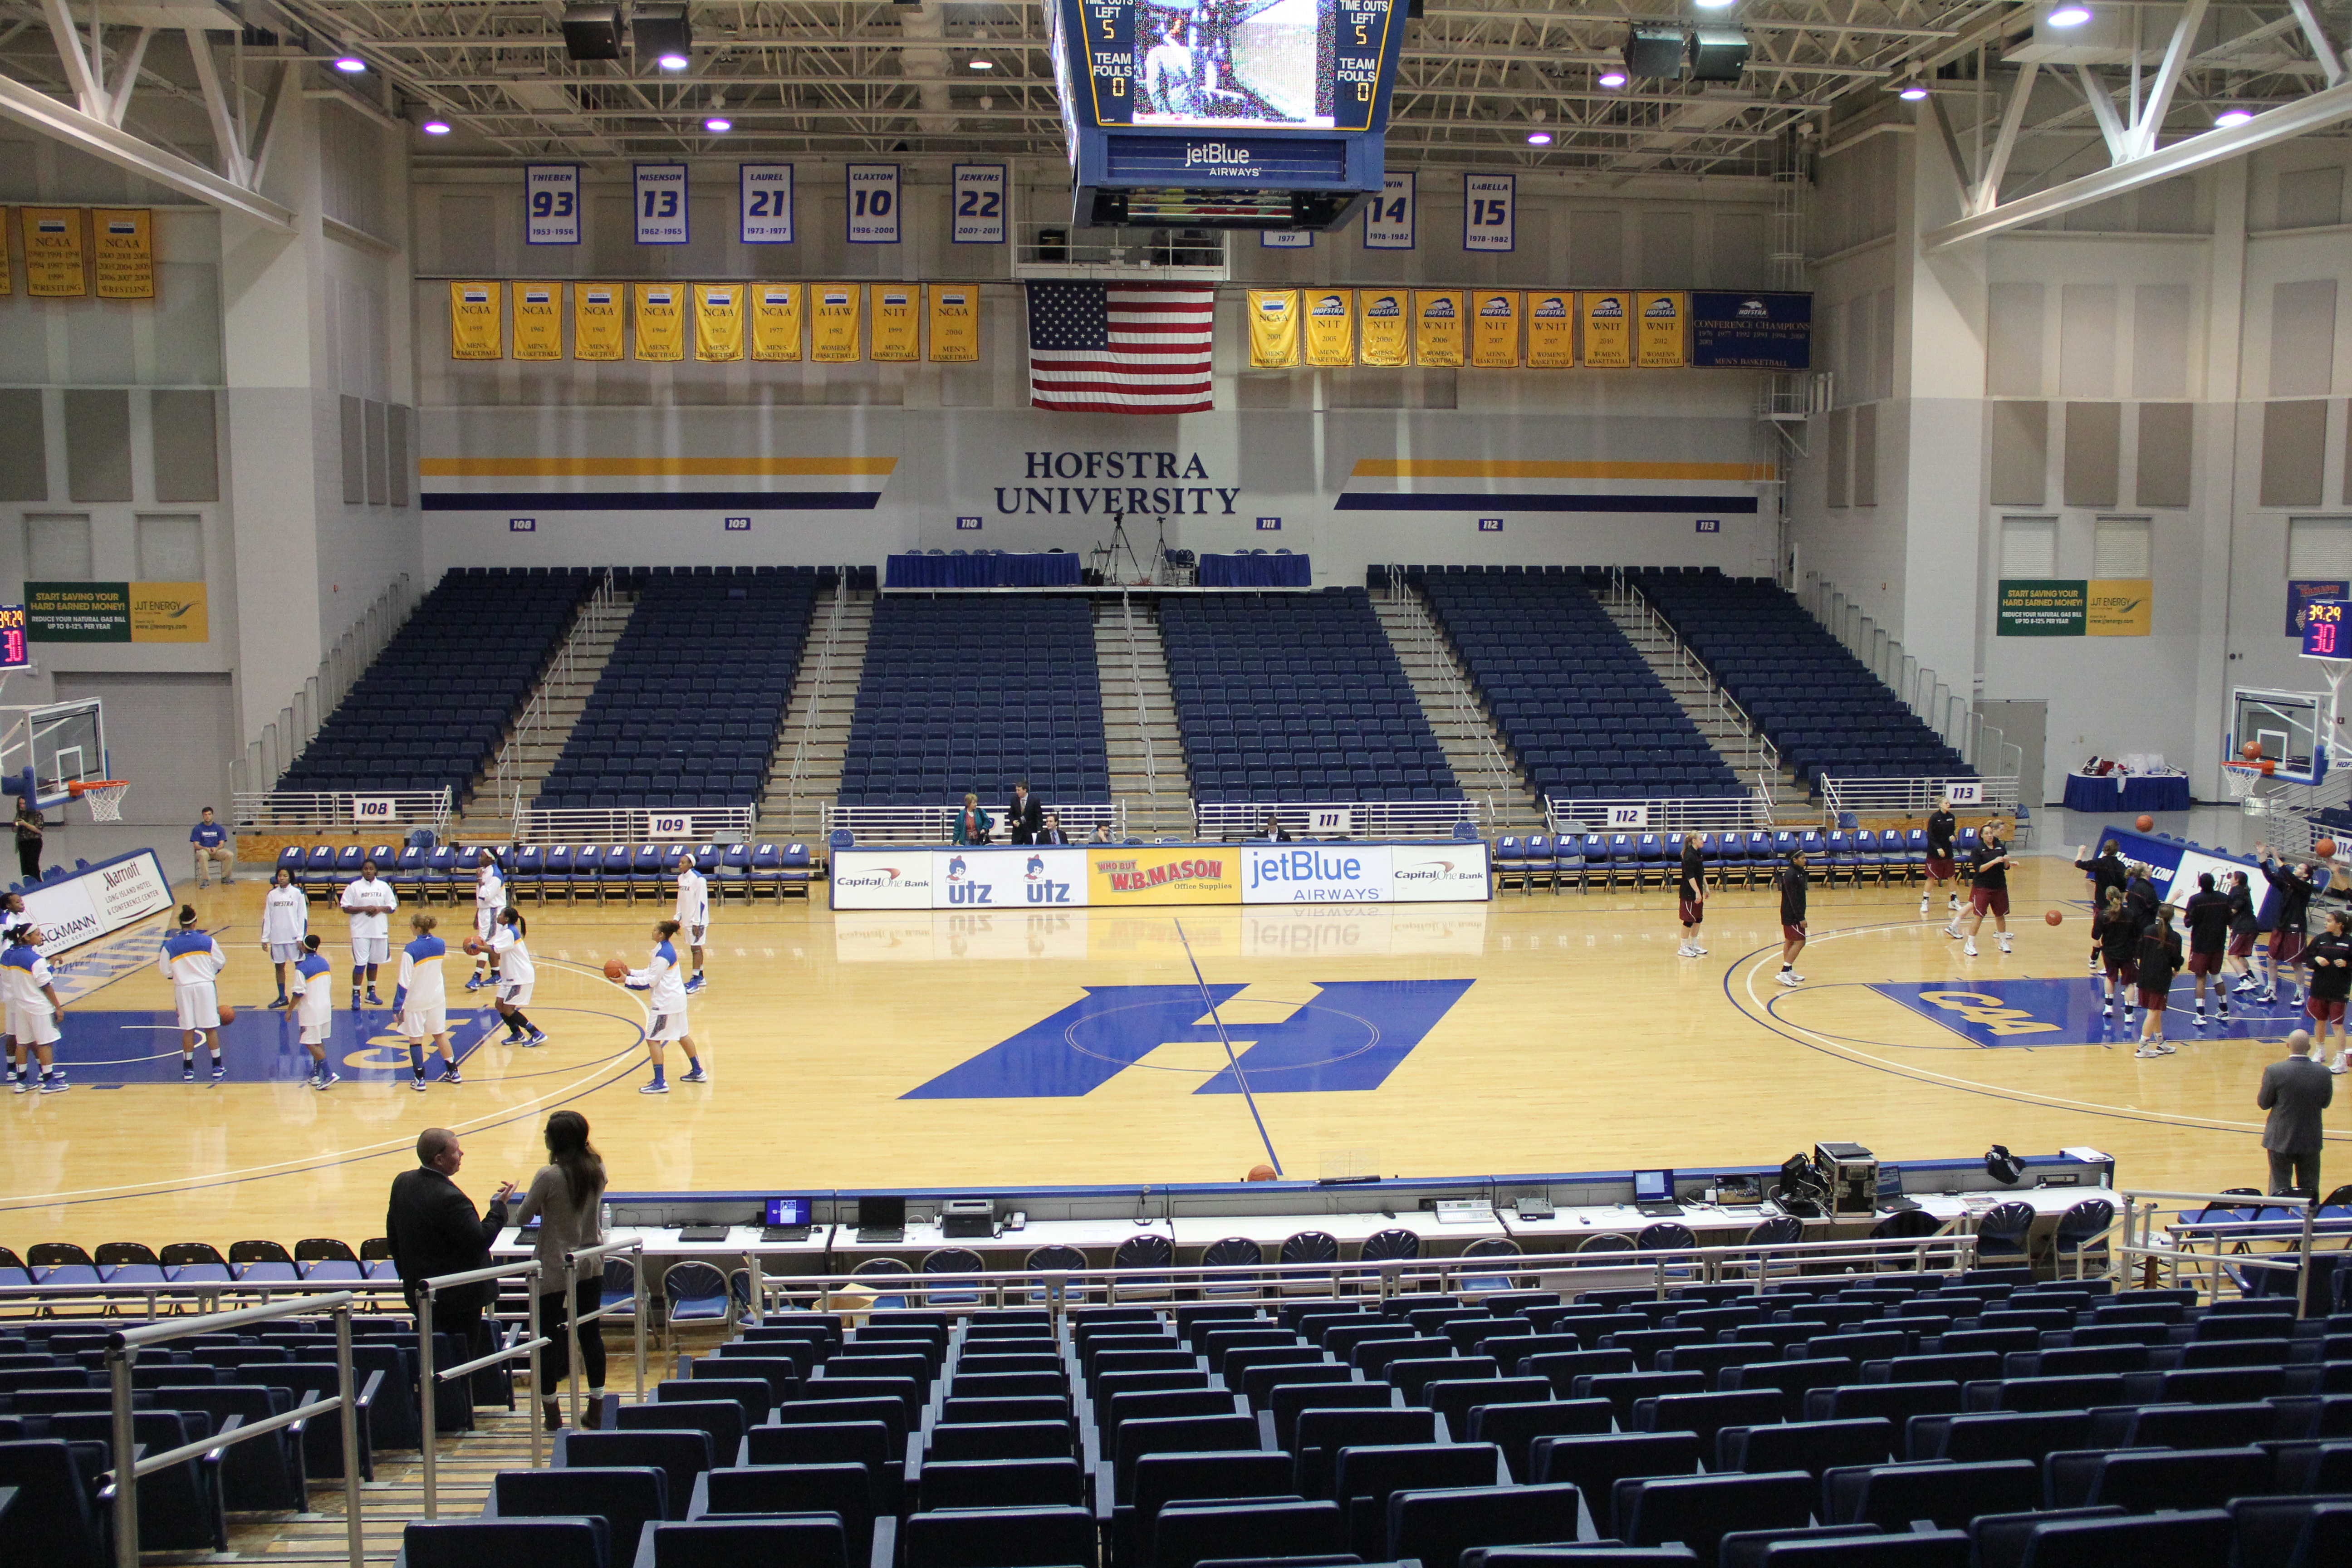 Exciting Developments Ahead For Hofstra University's Mack ...